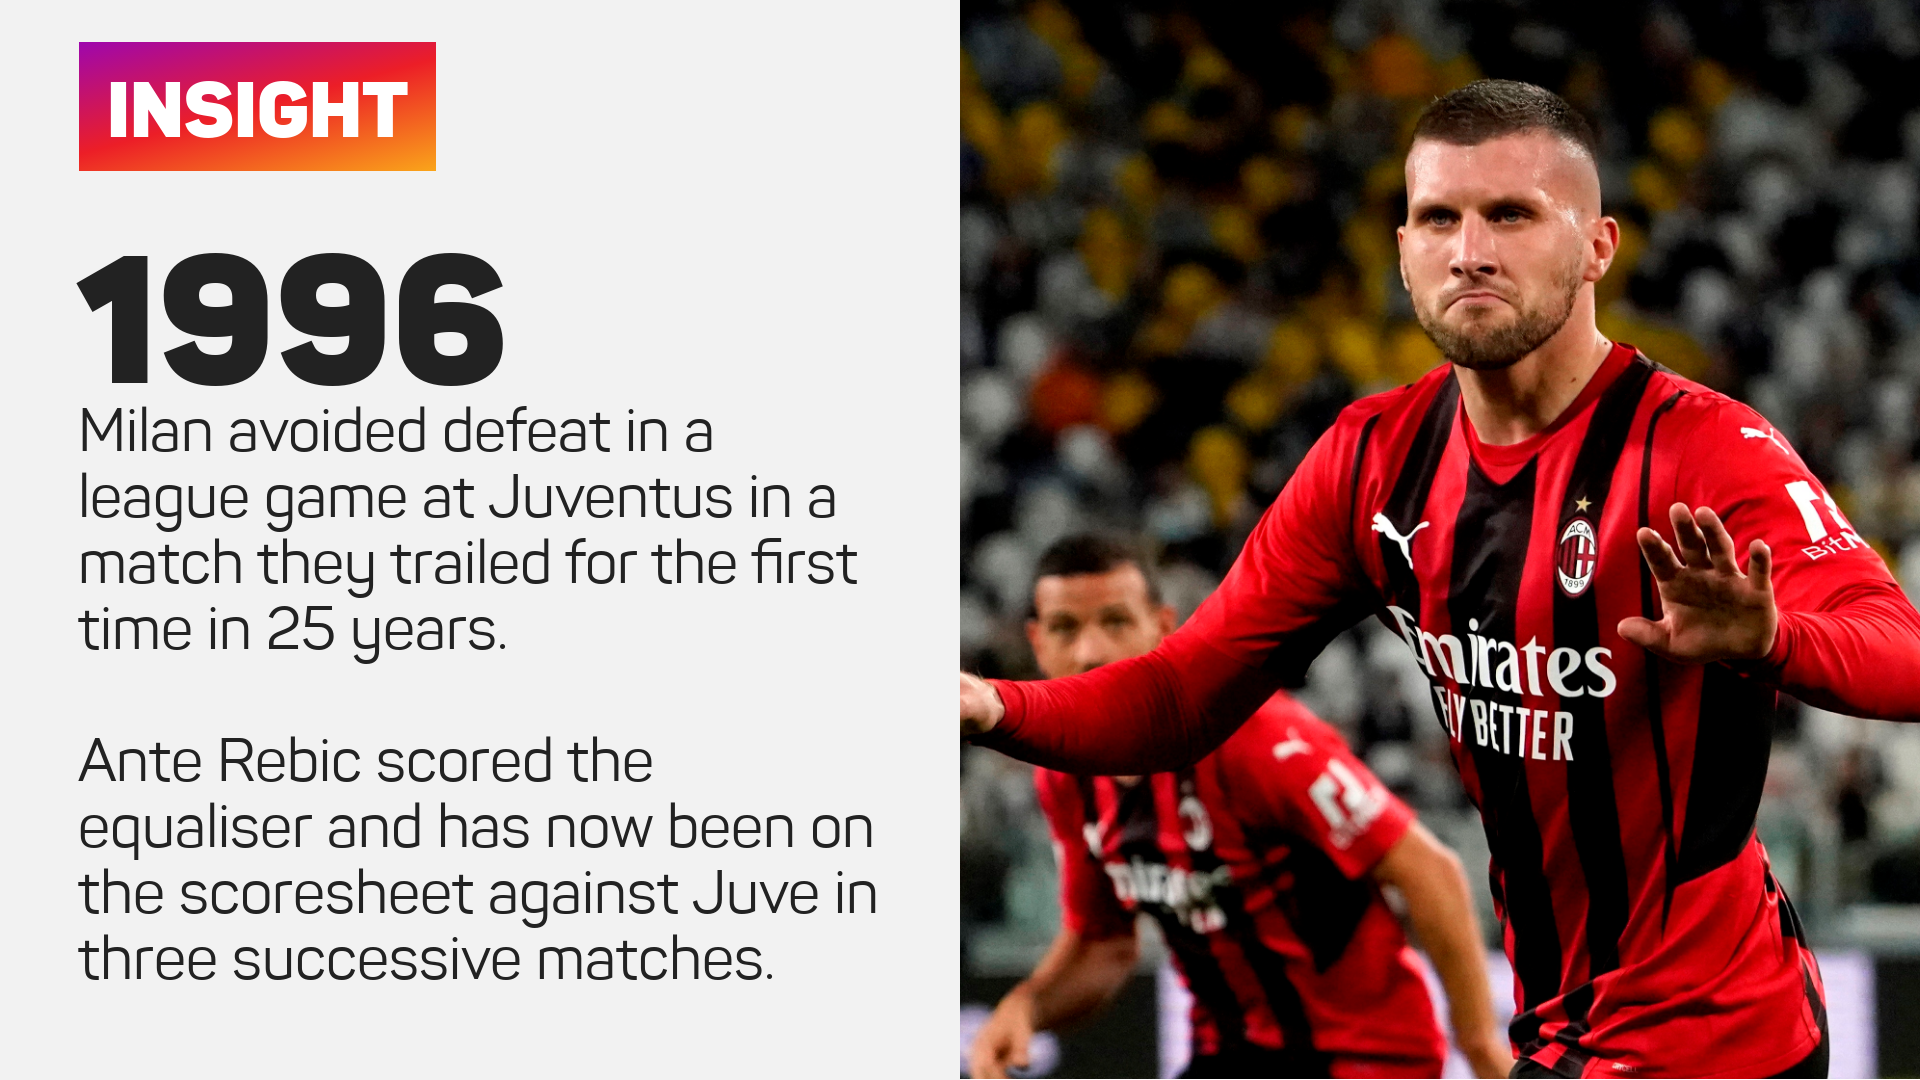 Milan avoided defeat at Juventus in a match they trailed for the first time since 1996